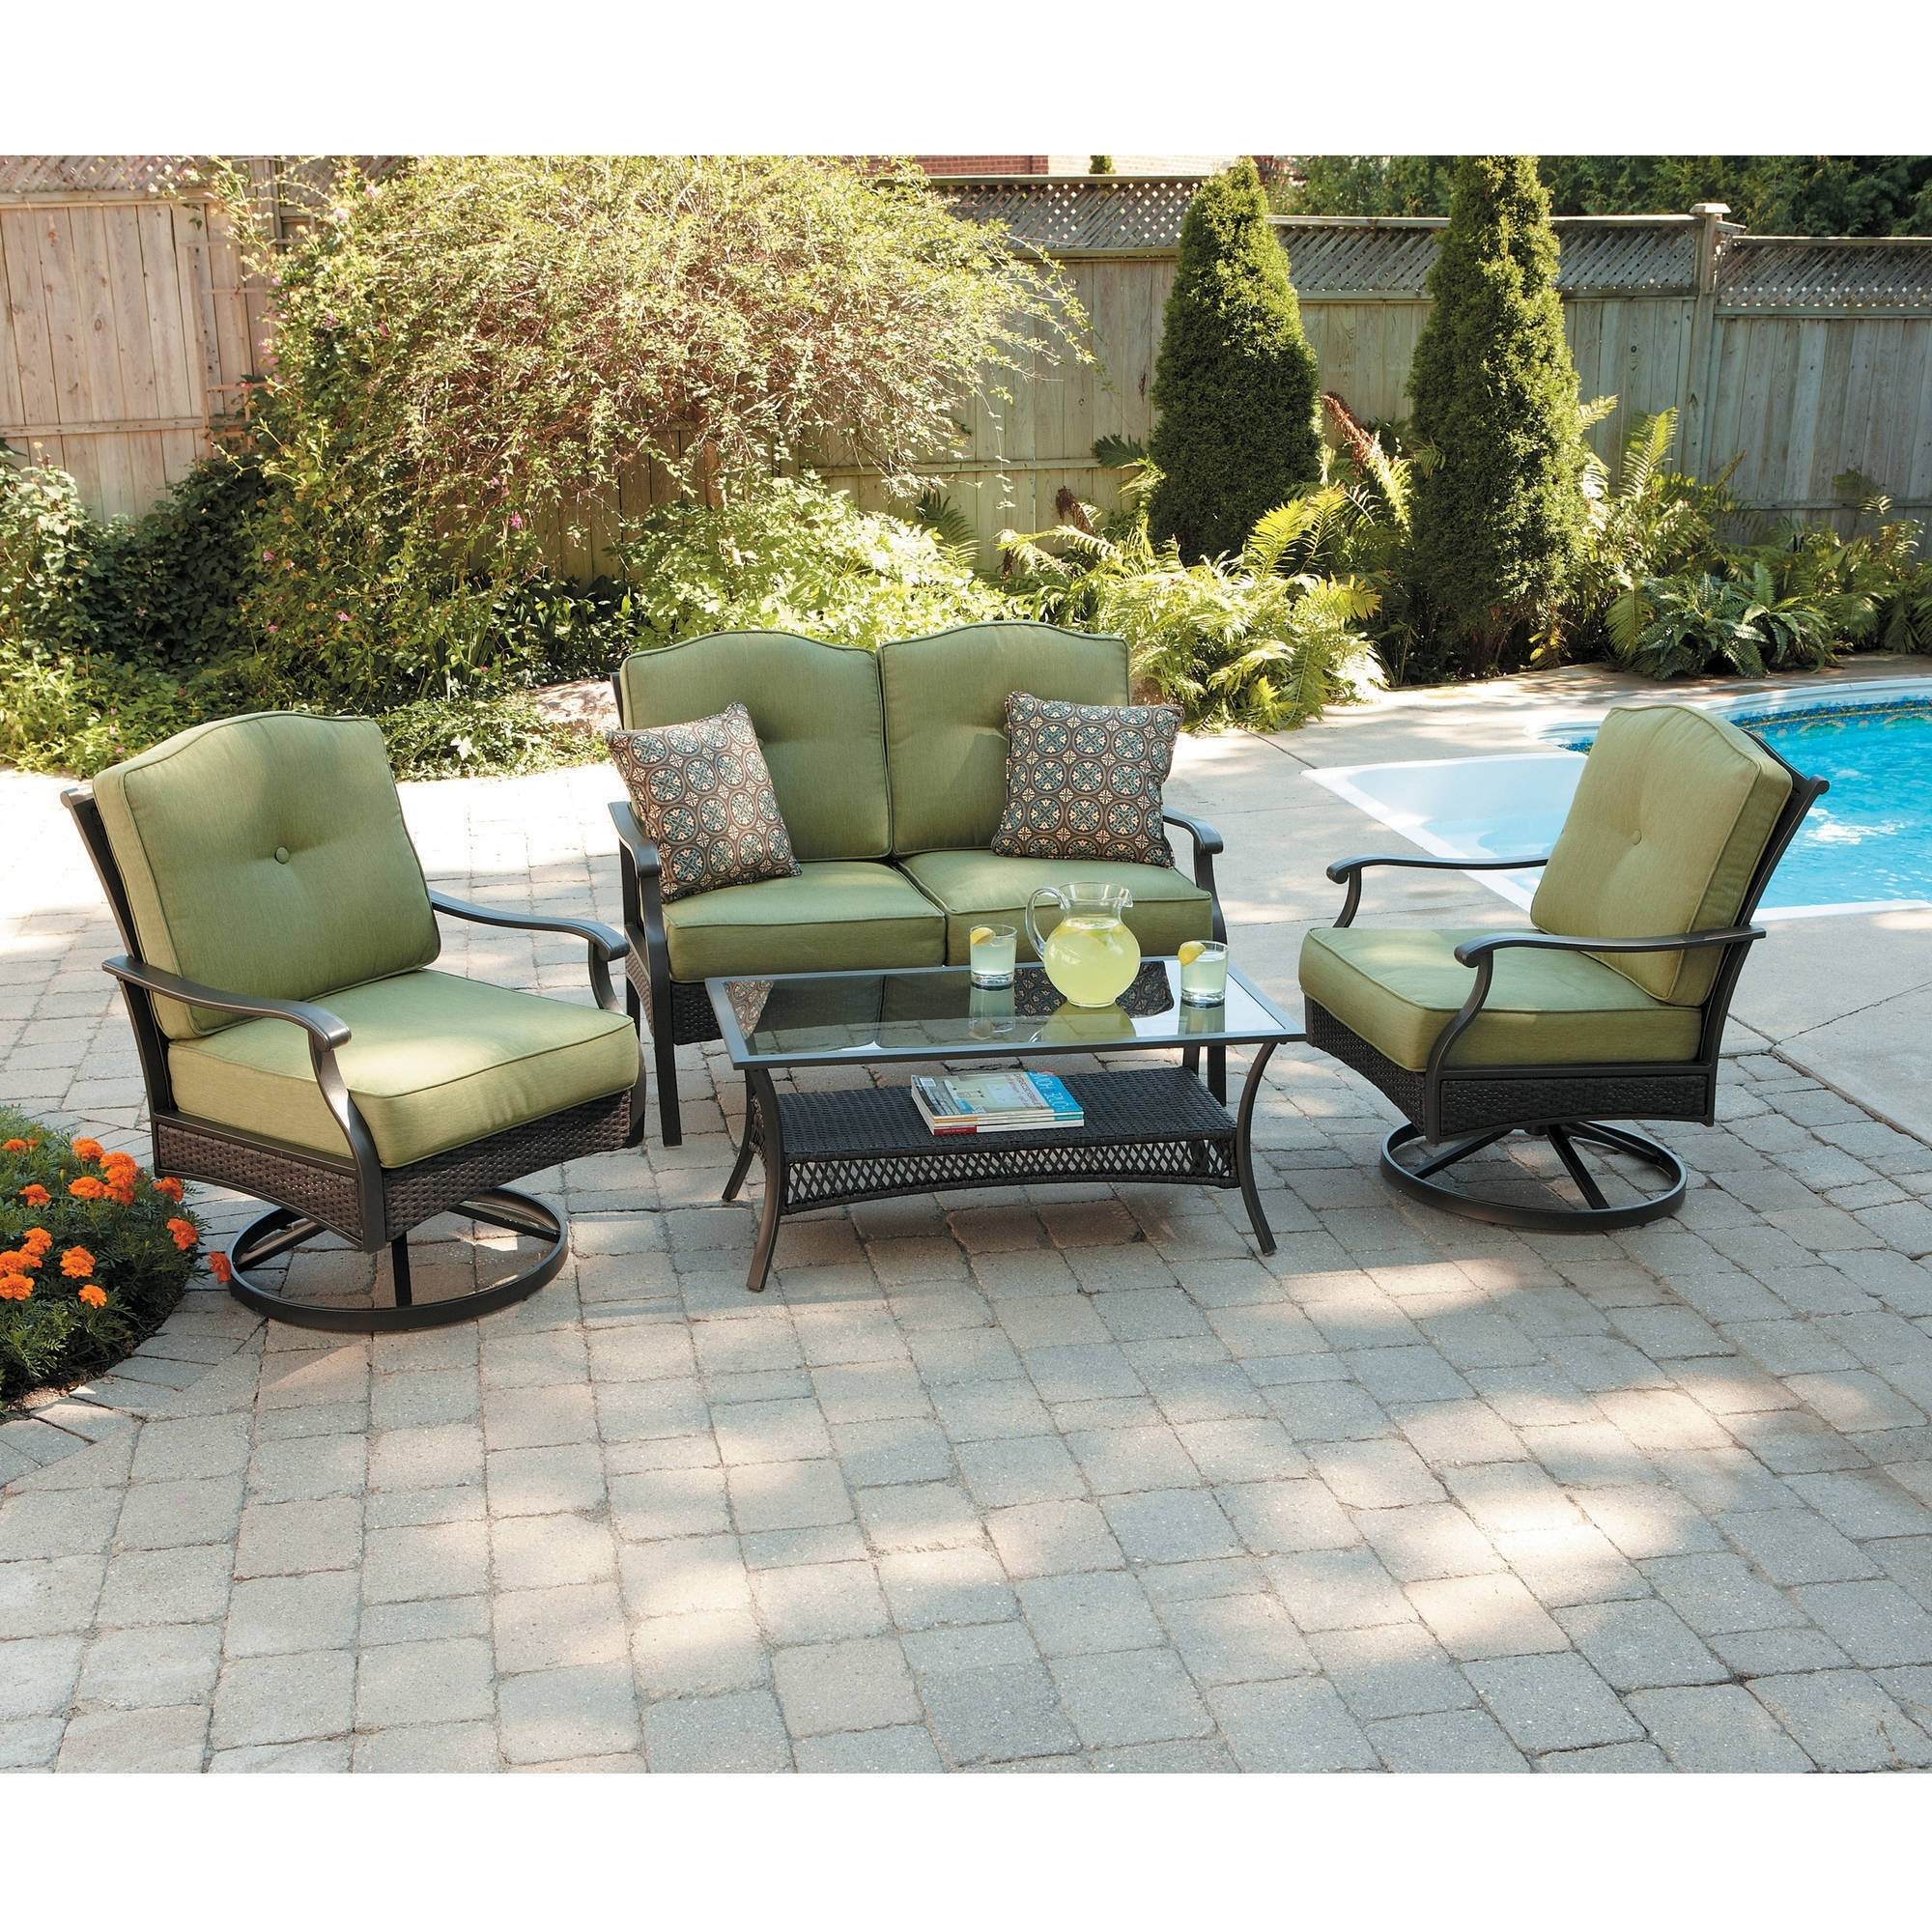 2018 Better Homes And Gardens Providence 4 Piece Patio Conversation Set Regarding Patio Conversation Sets With Storage (View 1 of 20)